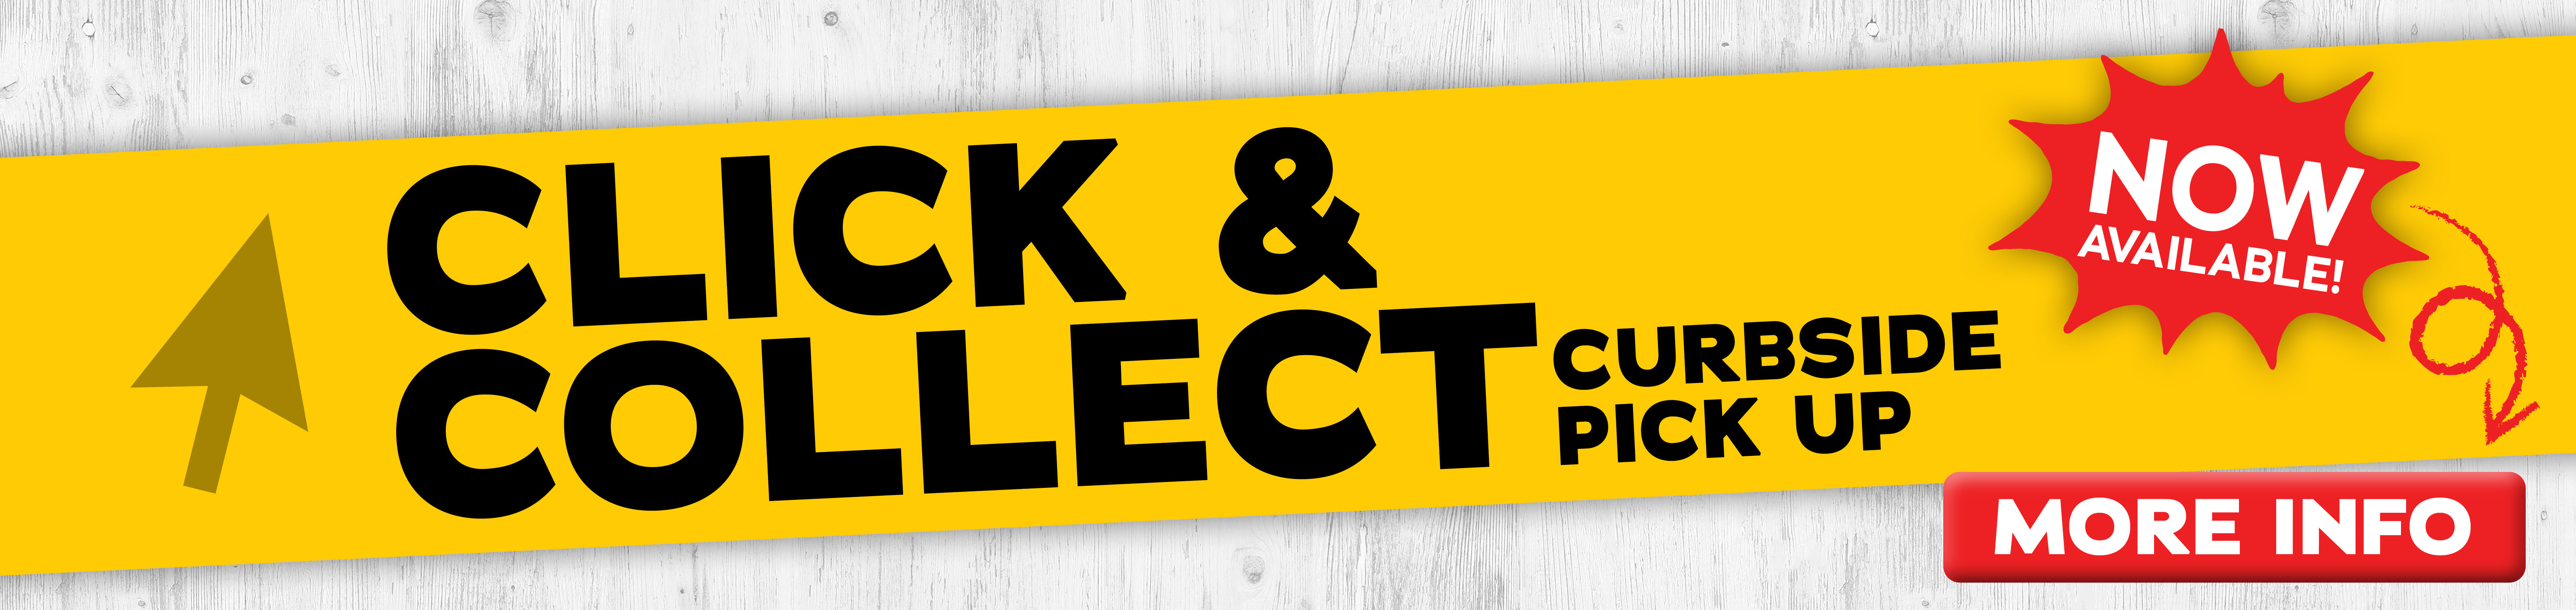 Click & Collect Curbside Pick Up Now Available